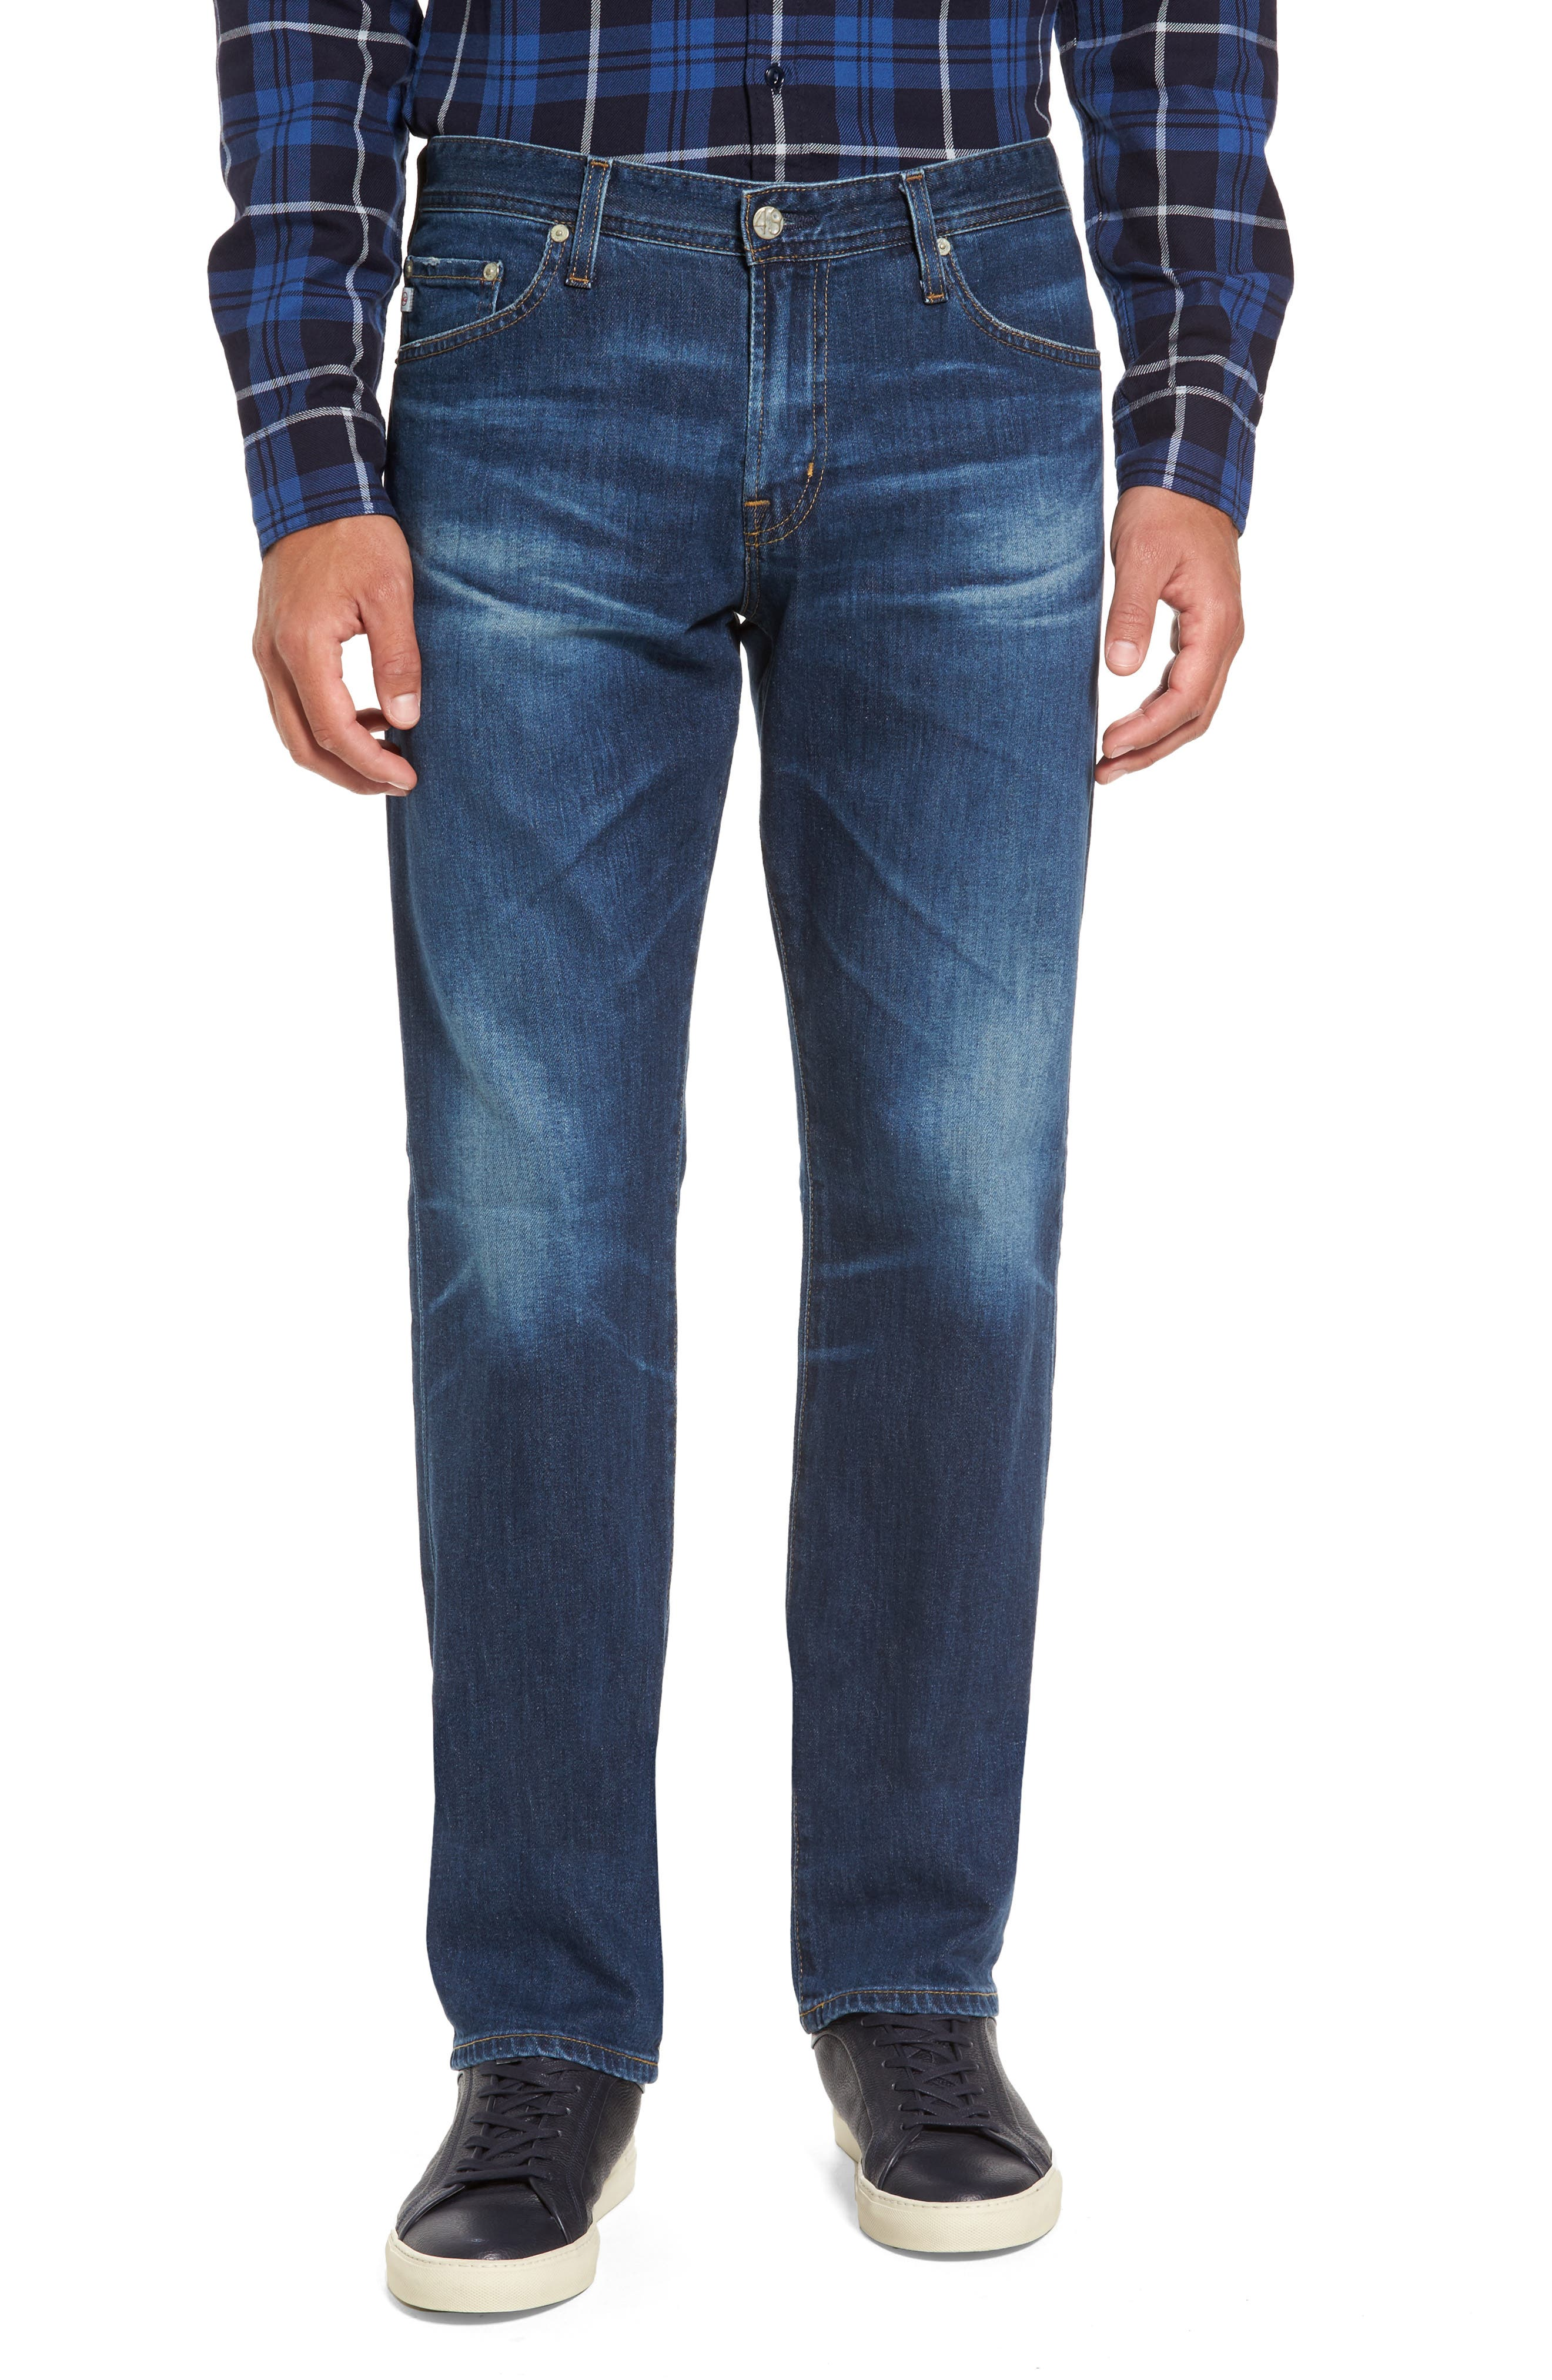 Graduate Slim Straight Leg Jeans,                         Main,                         color, 15 Years Wrecked